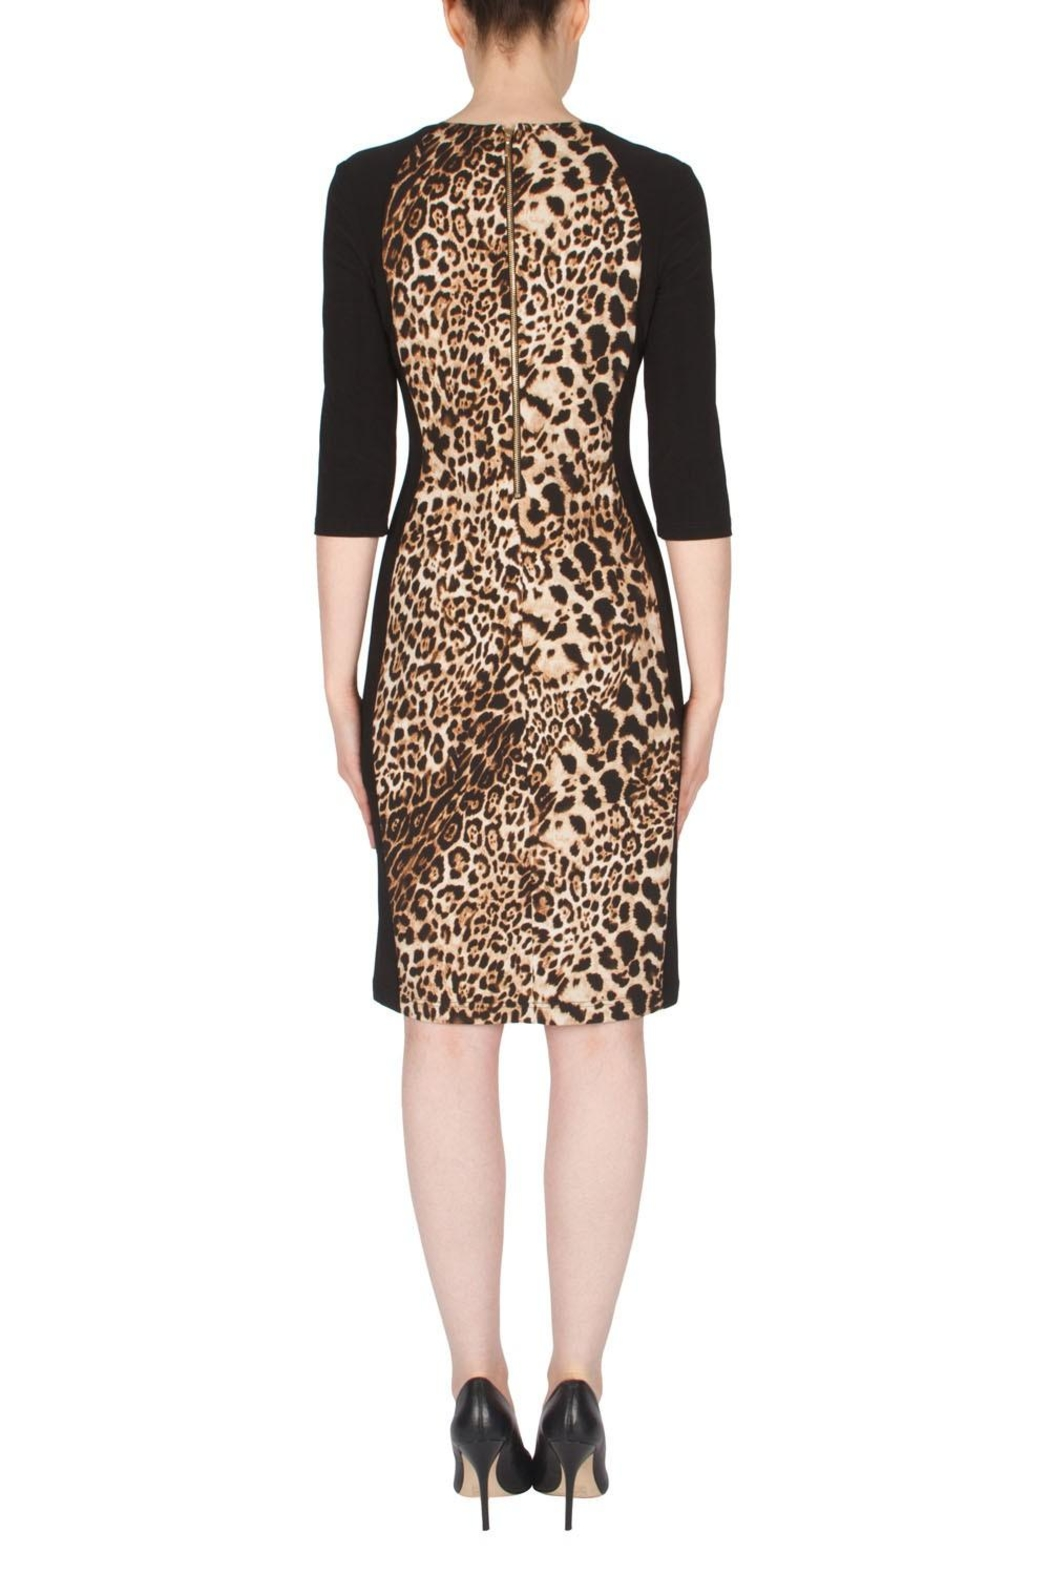 Joseph Ribkoff Leopard Print Dress - Side Cropped Image